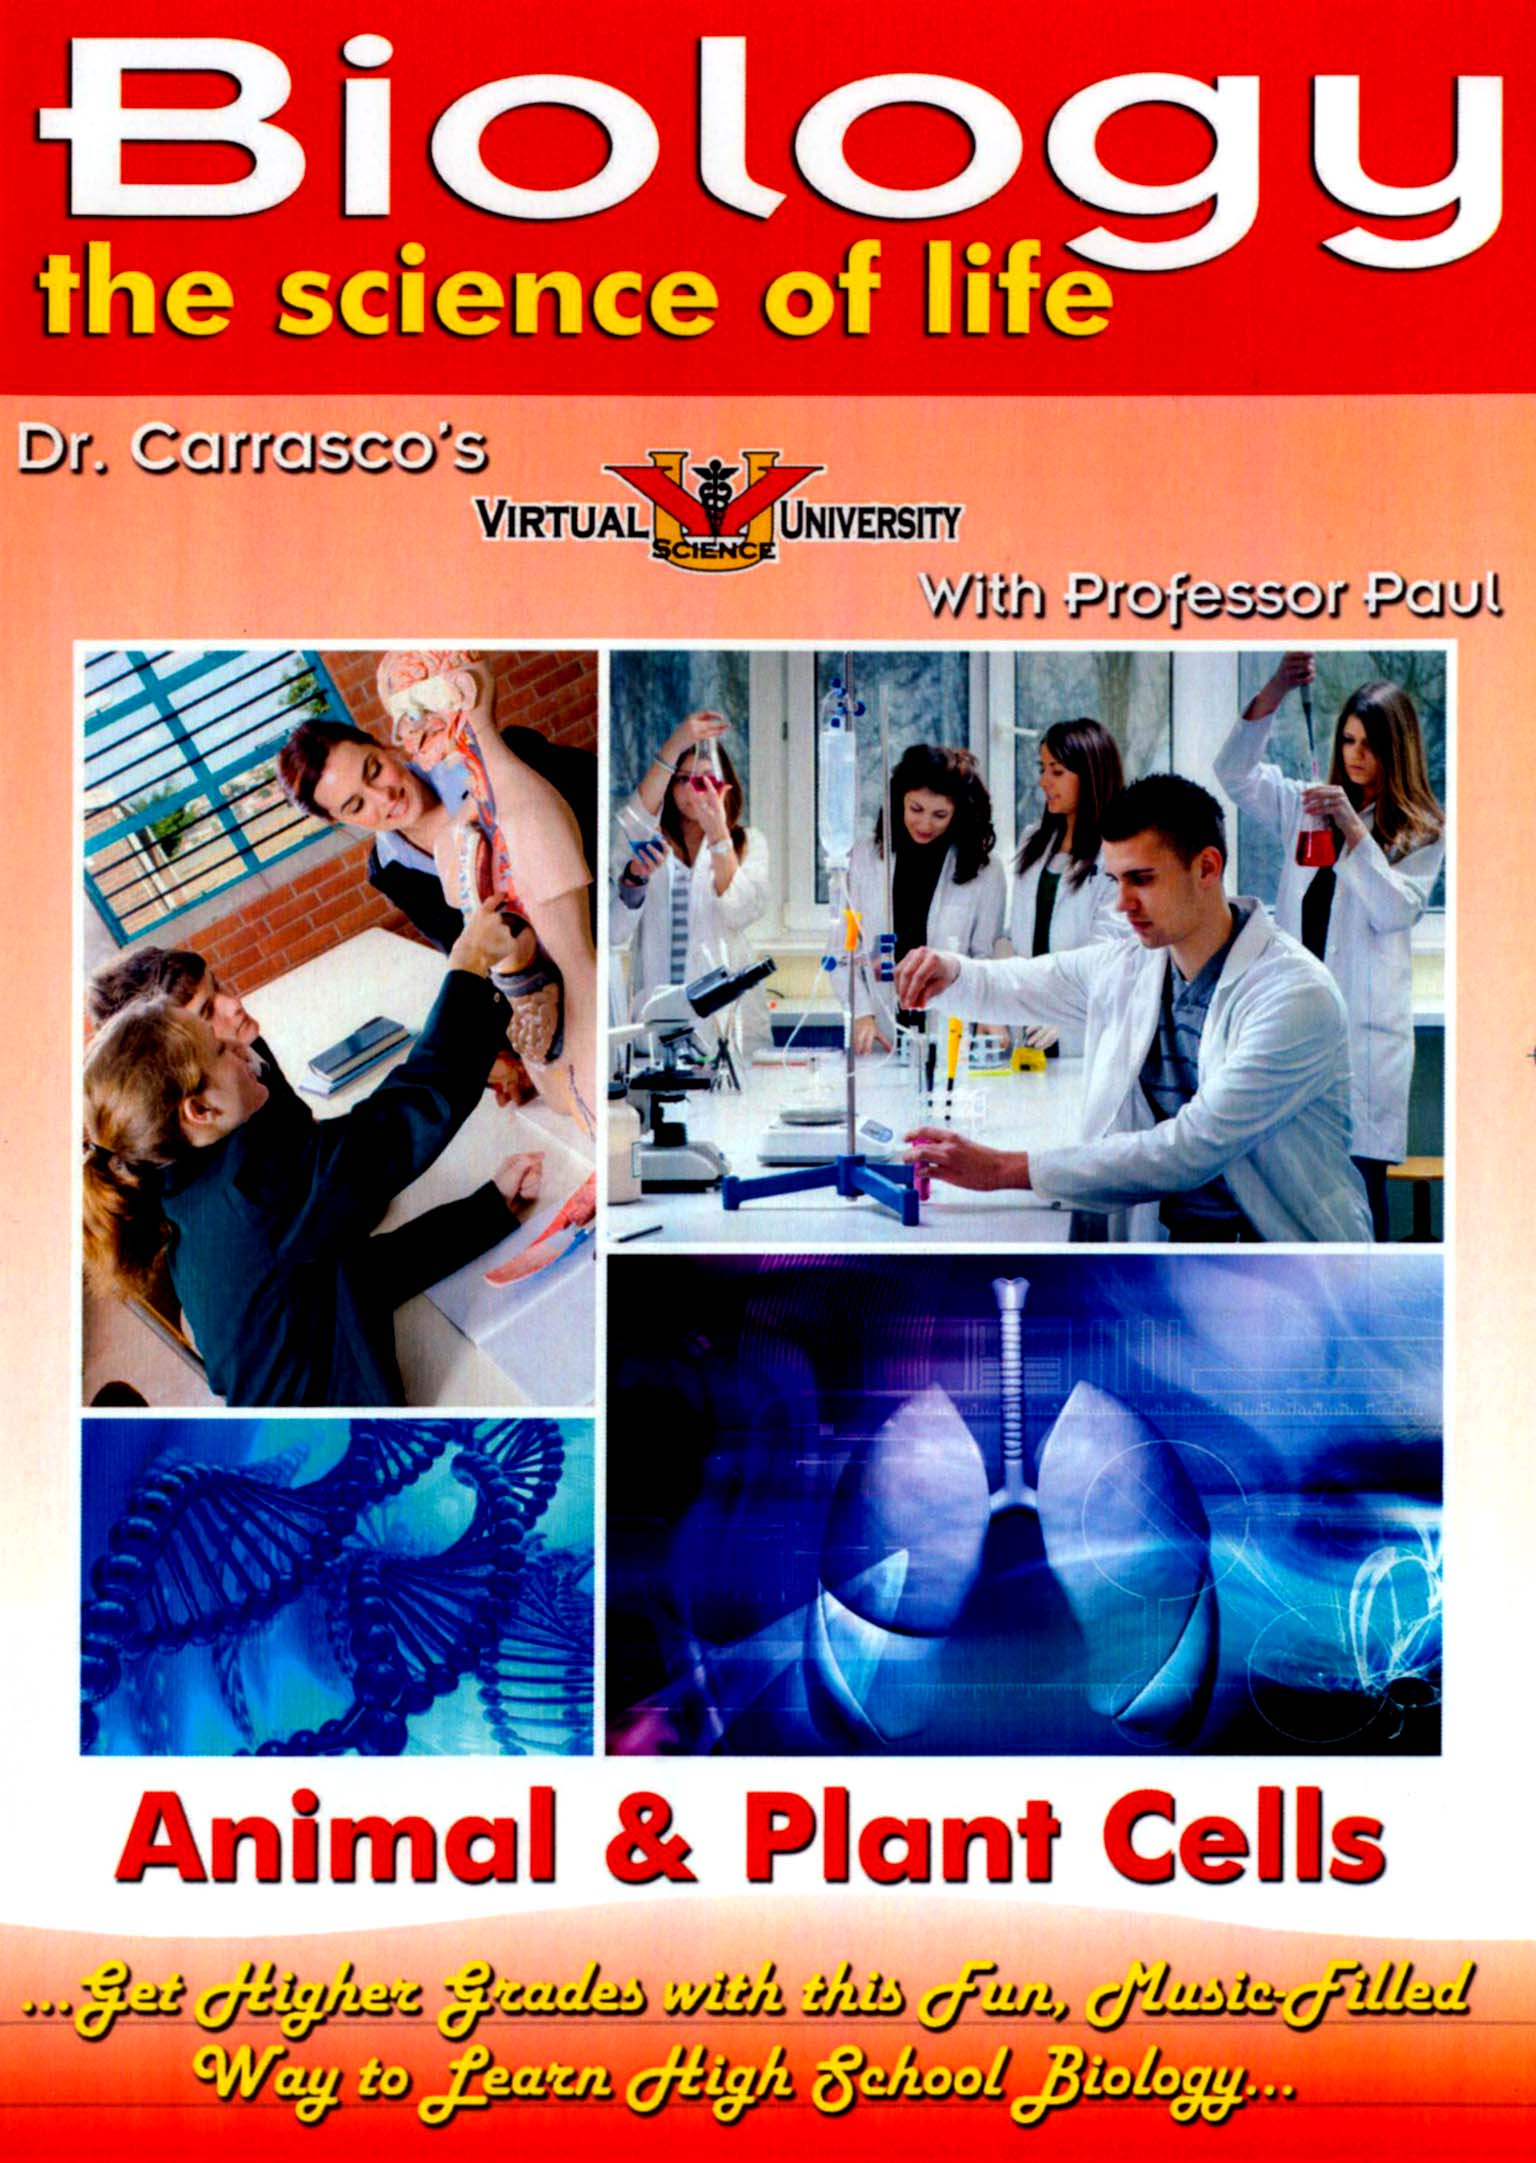 Biology - The Science of Life: Animal & Plant Cells